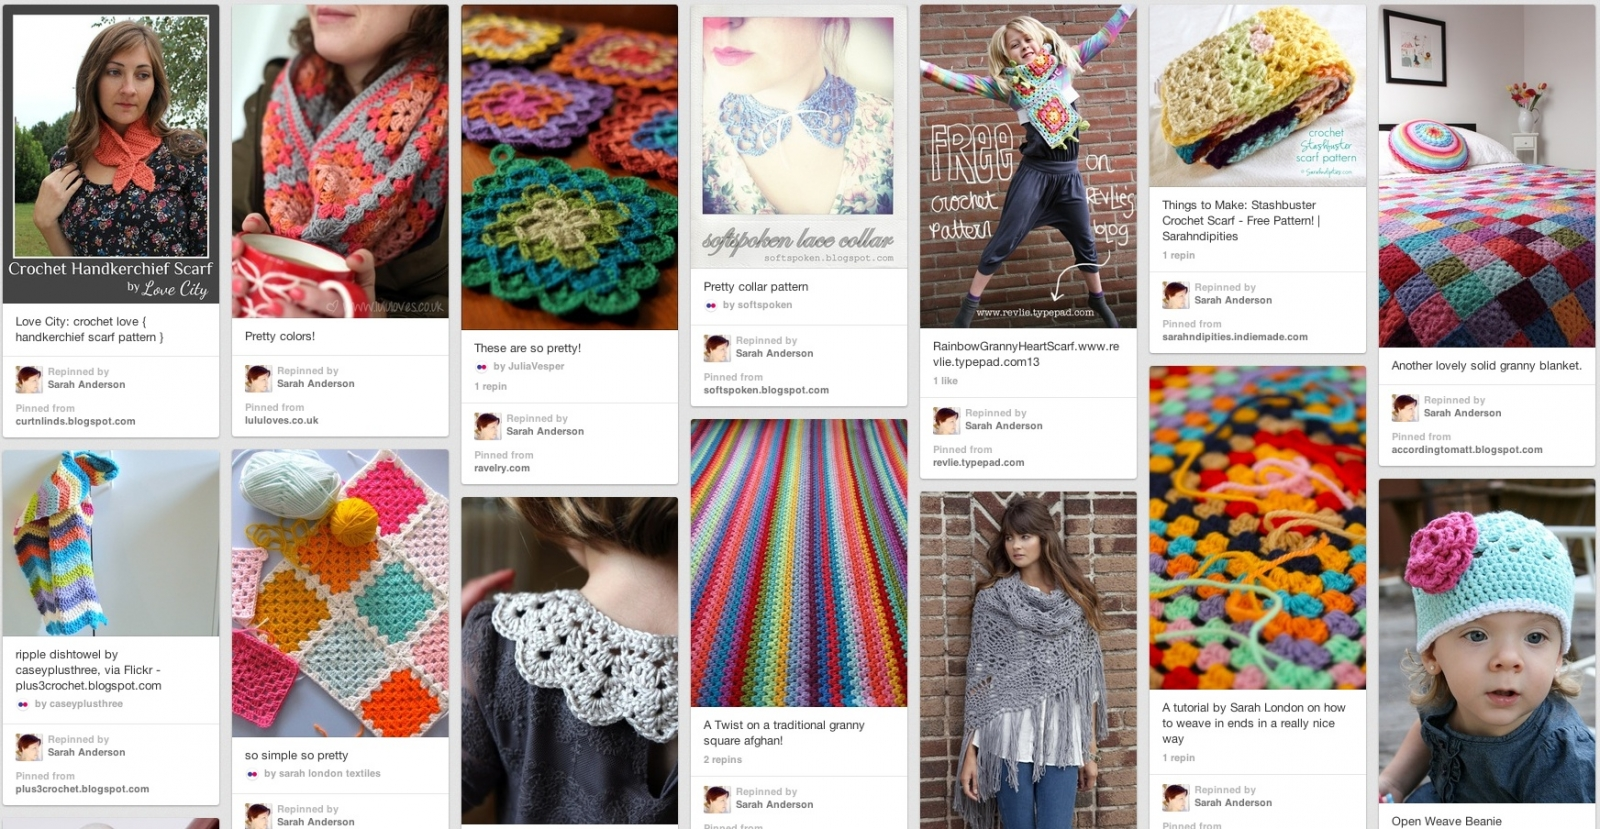 Crocheting Pinterest : Pinterest inspiration ~ Crochet Love Sarahndipities